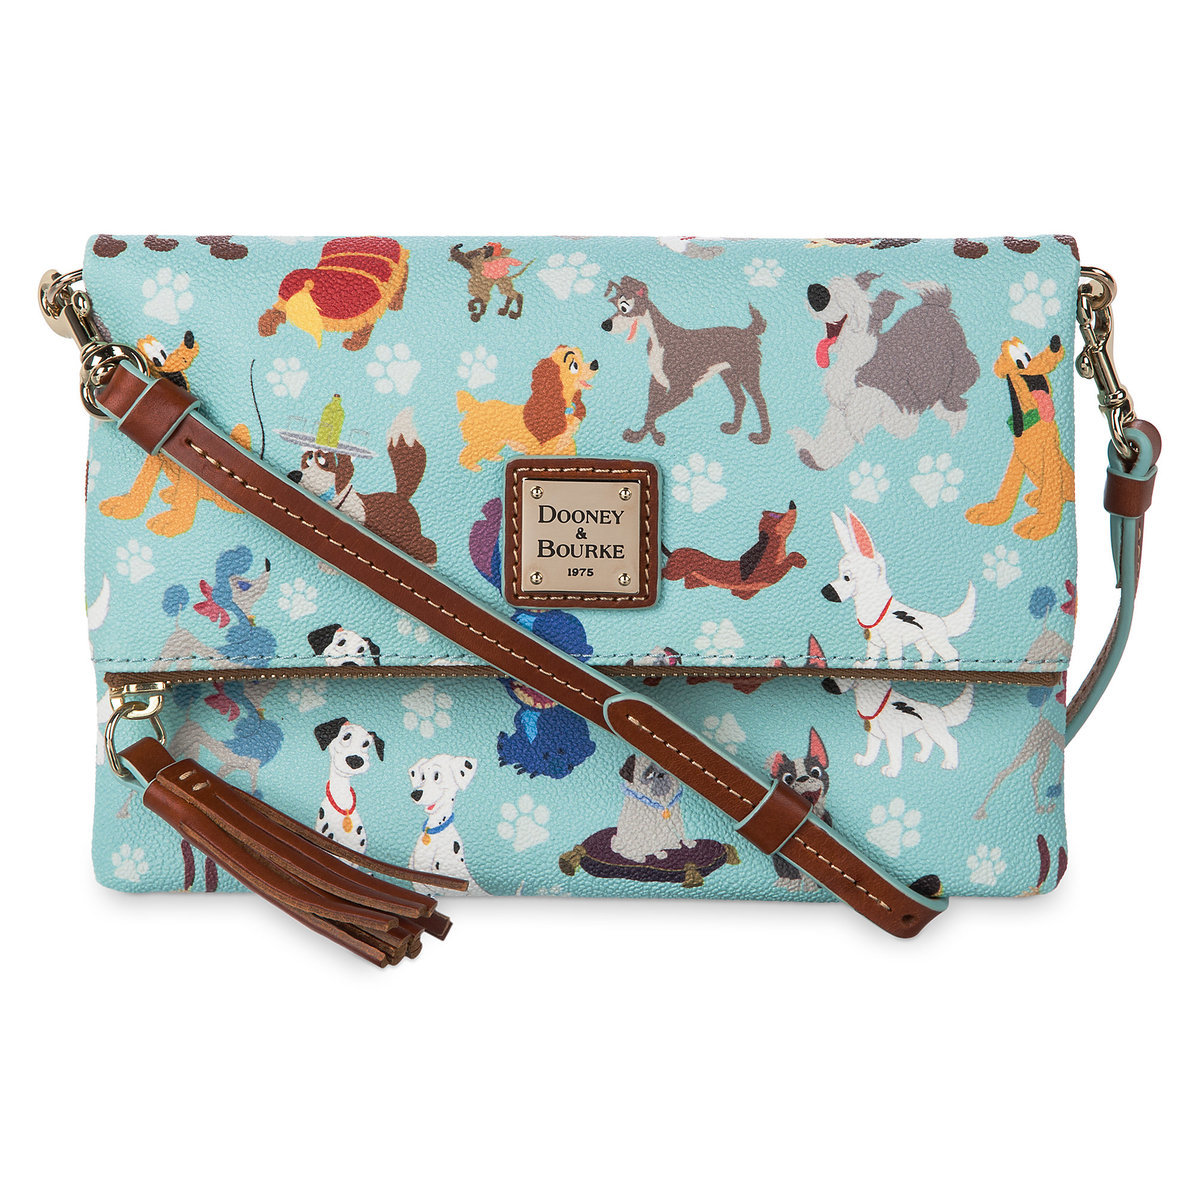 Shop our amazing selection of Dooney and Bourke bags at Boscov's. Whether you're looking for a handbag, wristlet, wallet, or minibag, we have something perfect for you! Order online today!